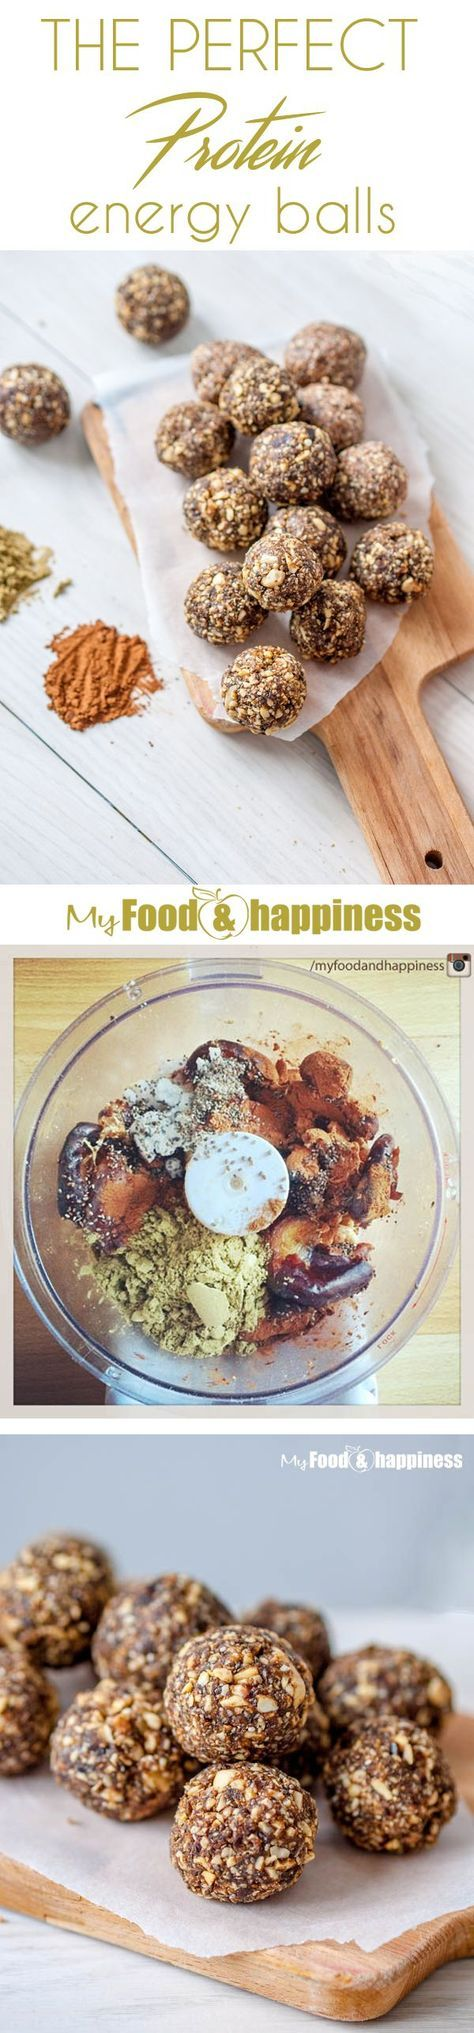 These amazing, simple protein balls are super easy to make – all you need is 5 ingredients, 5 minutes and a food processor! They are vegan, full of protein and other super nutritious ingredients. The best thing about these energy bites is that they can be stored in the fridge for at least 10 days with no problems!